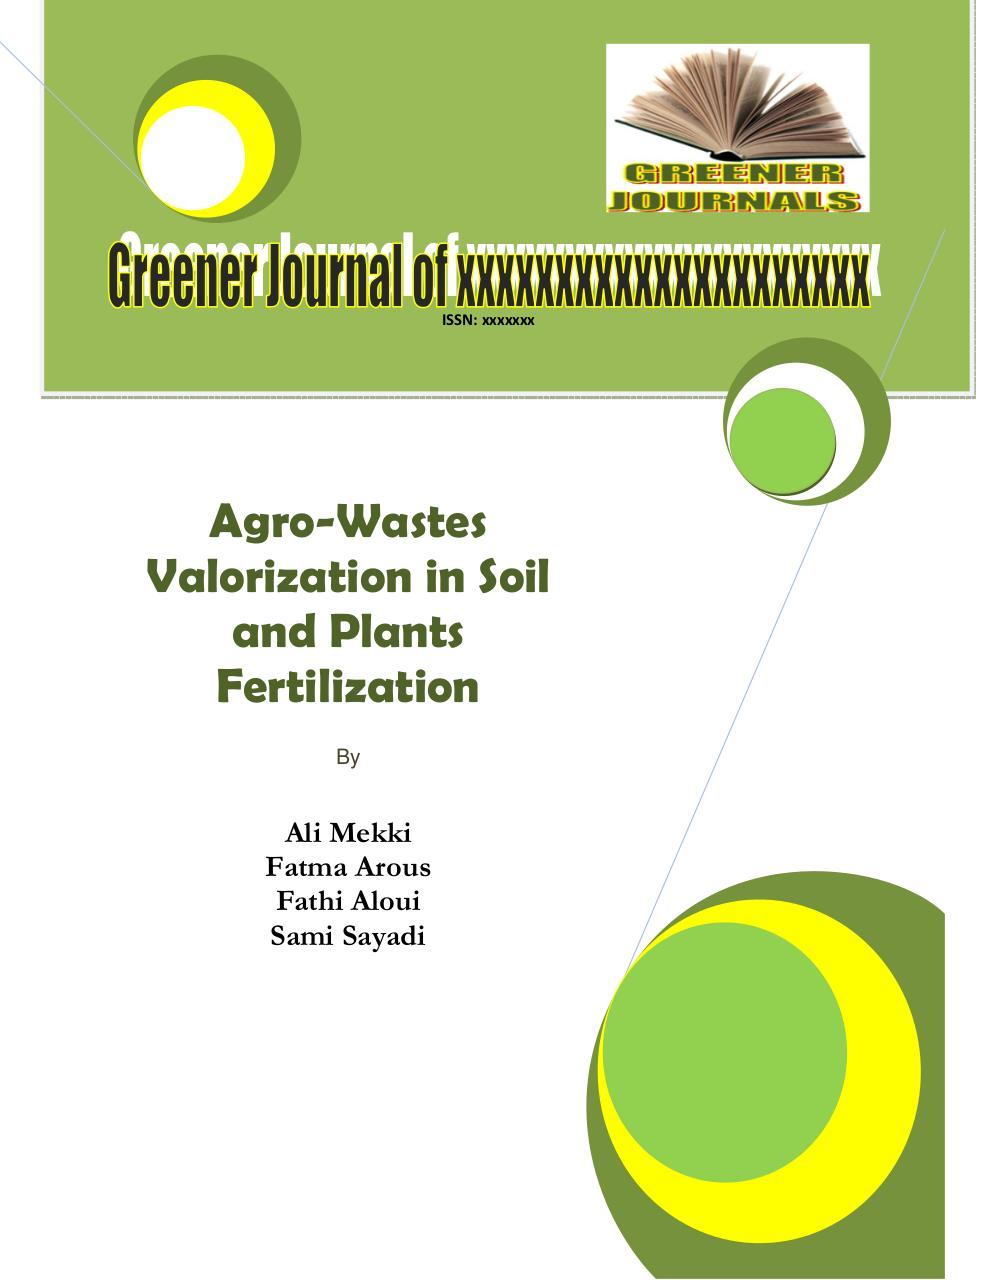 Agro-Wastes Valorization in Soil and Plants Fertilization..pdf - page 1/12